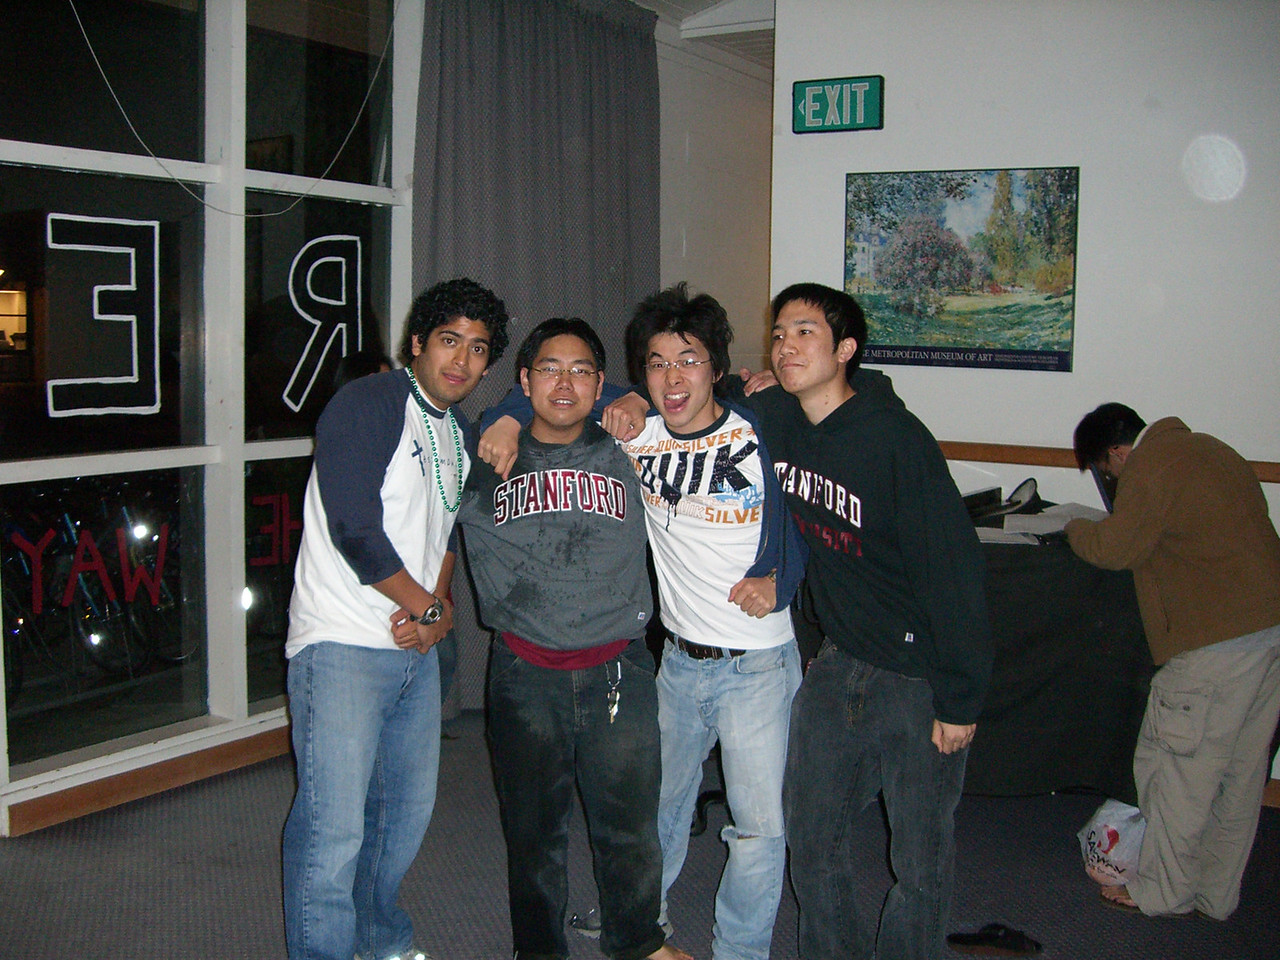 2006 03 01 Wed - David Chiang's B-day - Pablo Pozo, David Chiang, Hyungsoo Kim, & Michael Lin 2